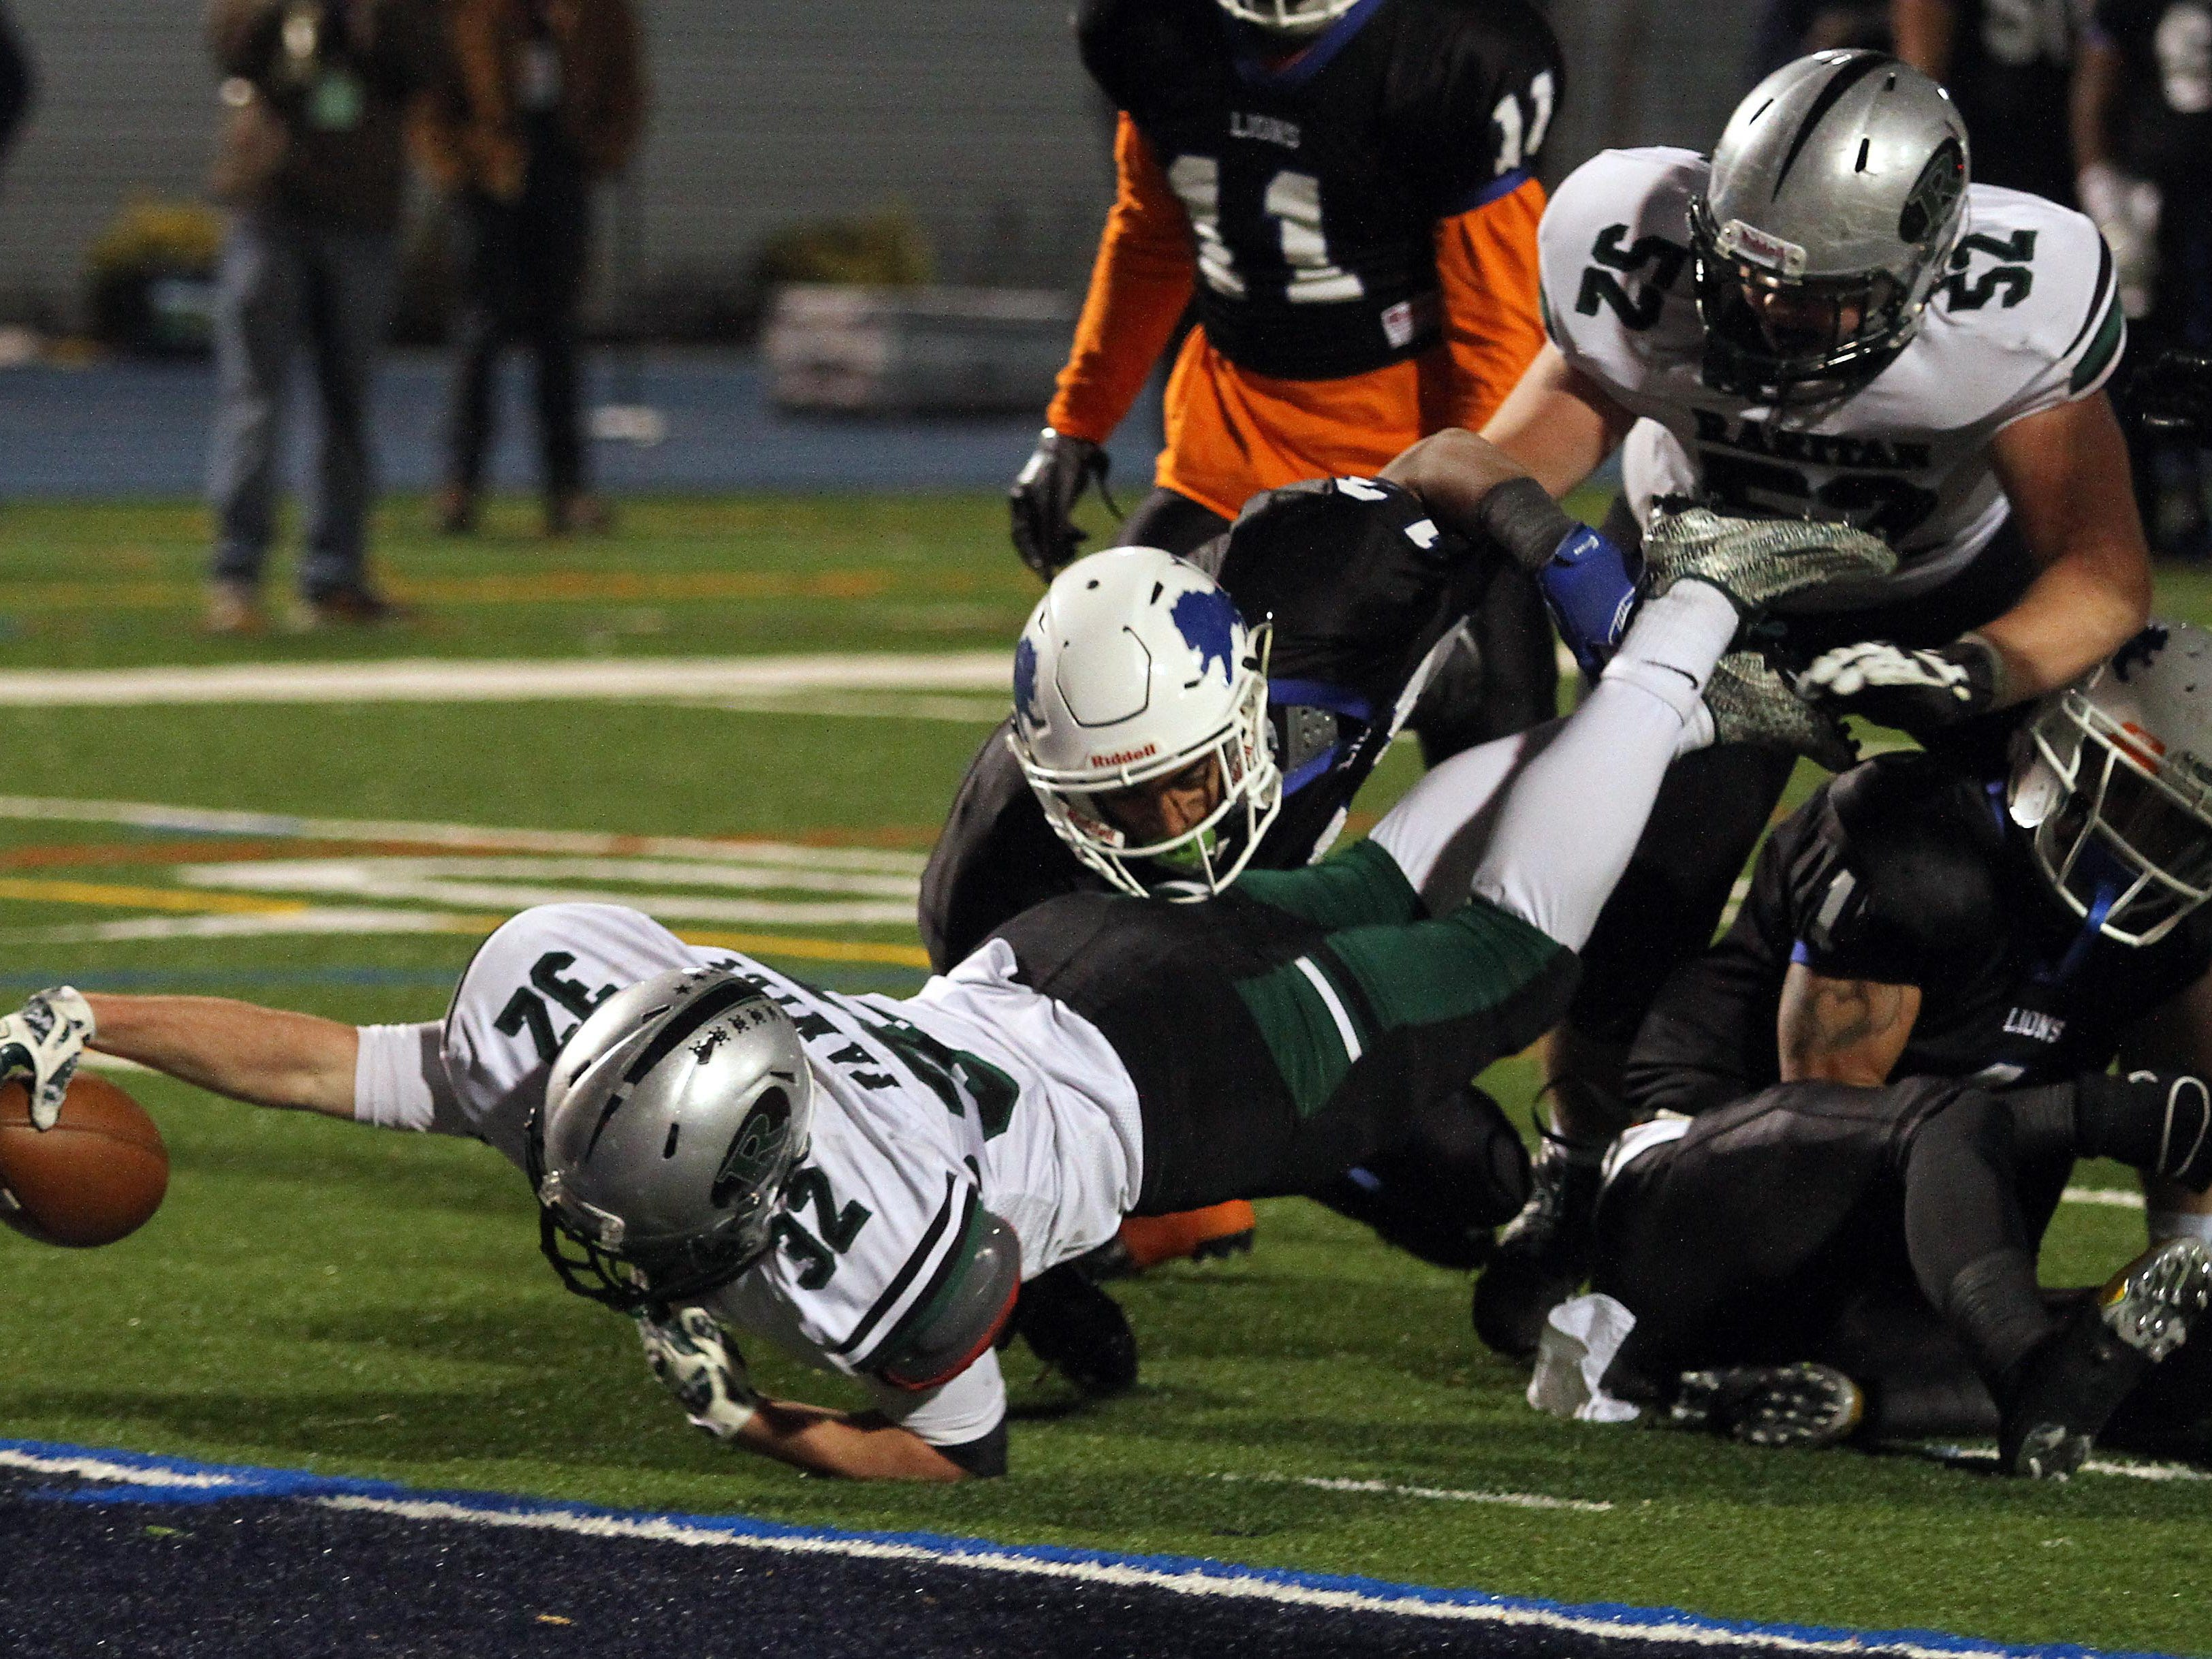 Raritan running back Derek Ernst dives into the end zone for a touchdown in the first half vs. Lincoln in the NJSIAA Central, Group Two Championship game at Kean University Alumni Stadium. December 5, 2015, Union, NJ.